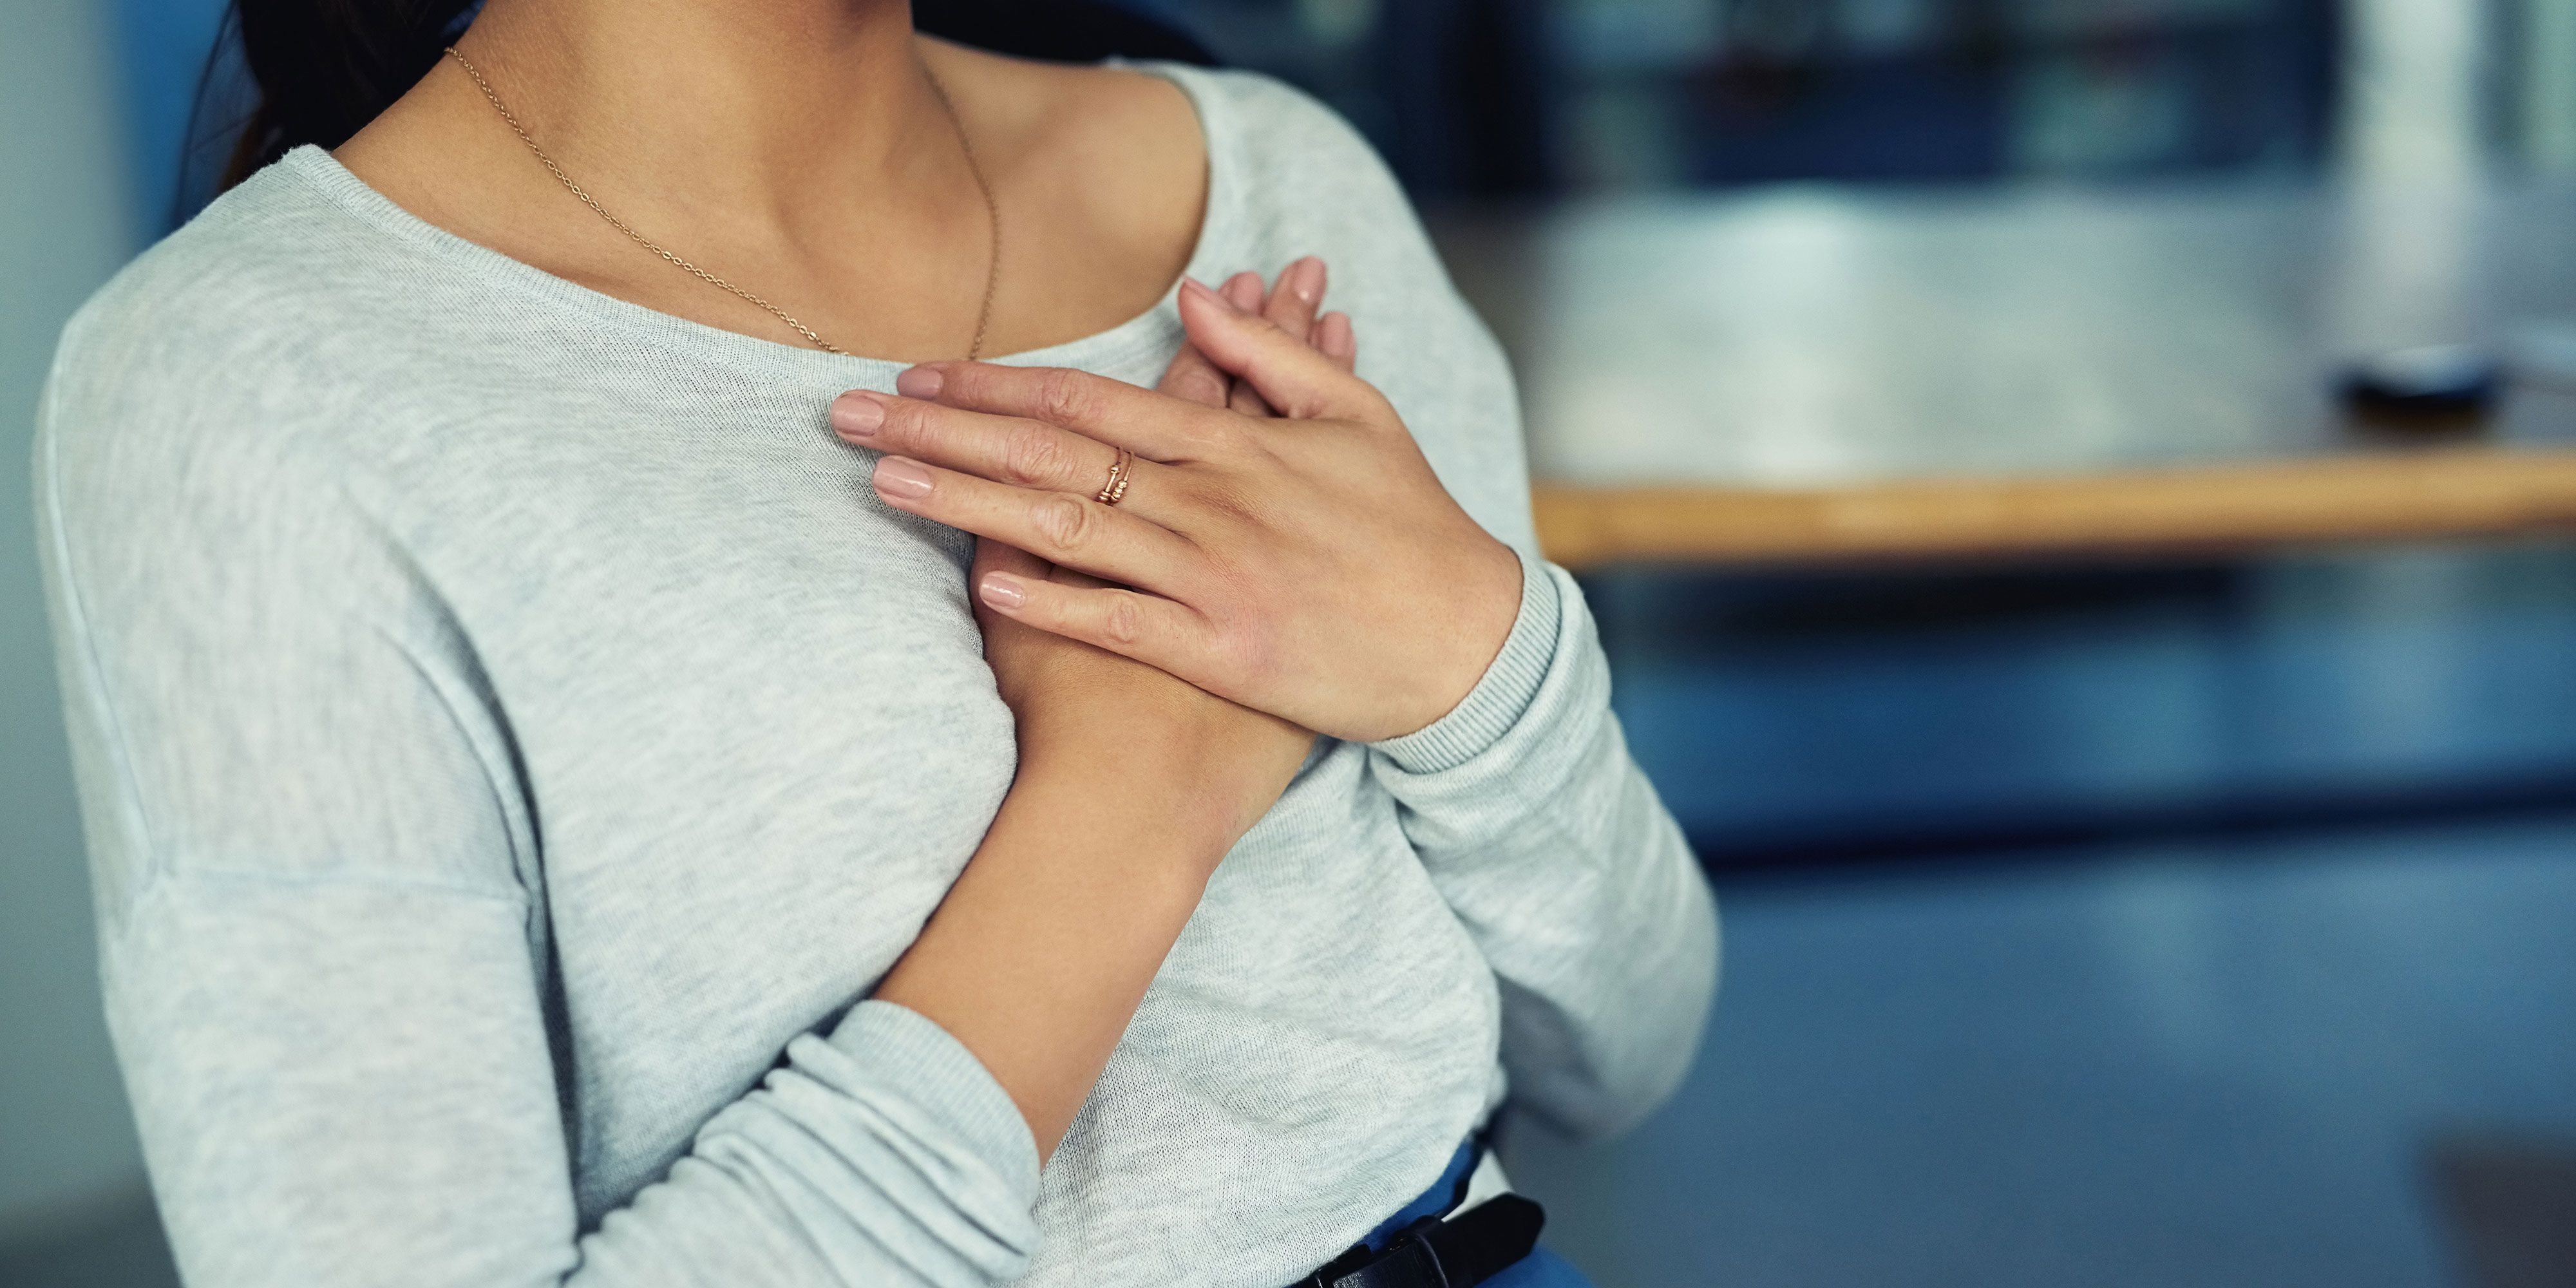 8 Easy Ways to Get Rid of Heartburn - Cures for Heartburn